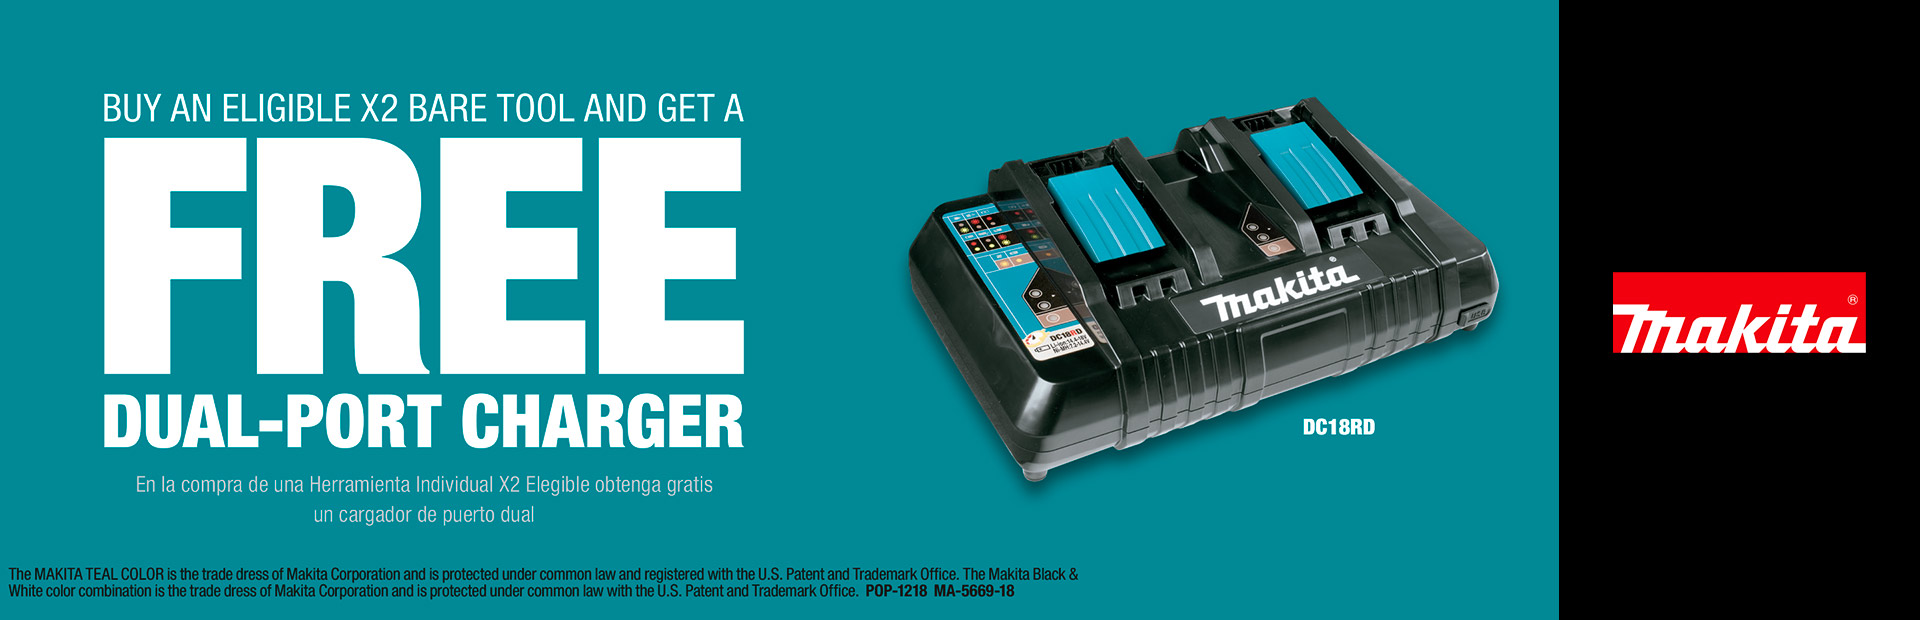 Makita: BUY A X2 BARE TOOL AND GET A DUAL-PORT CHARGER